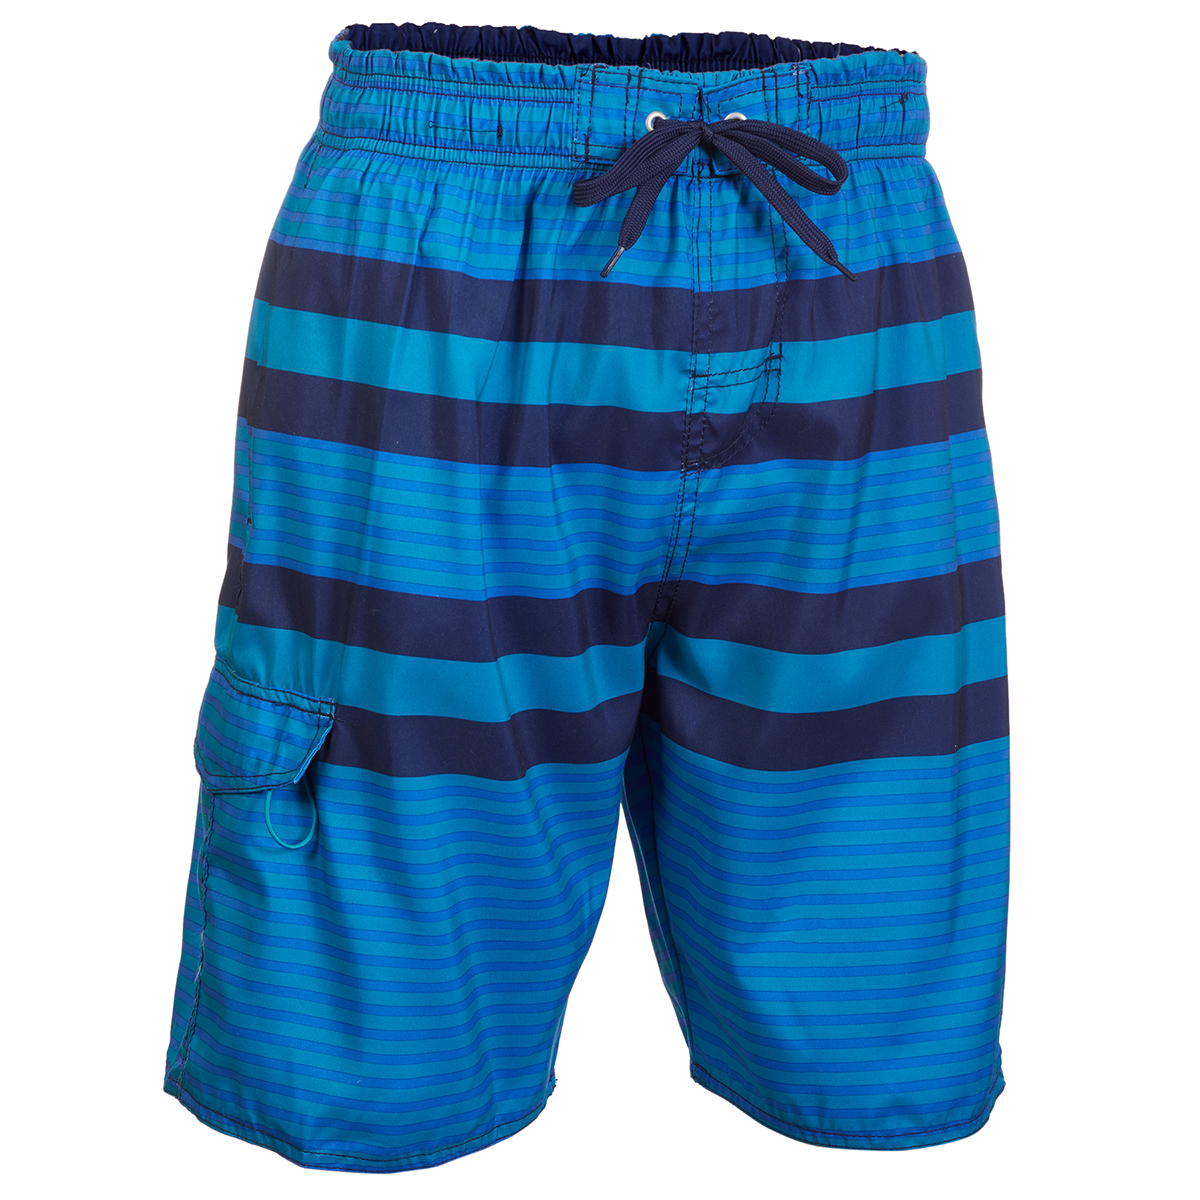 No Fear Men's Swimsuit - Blue, XL